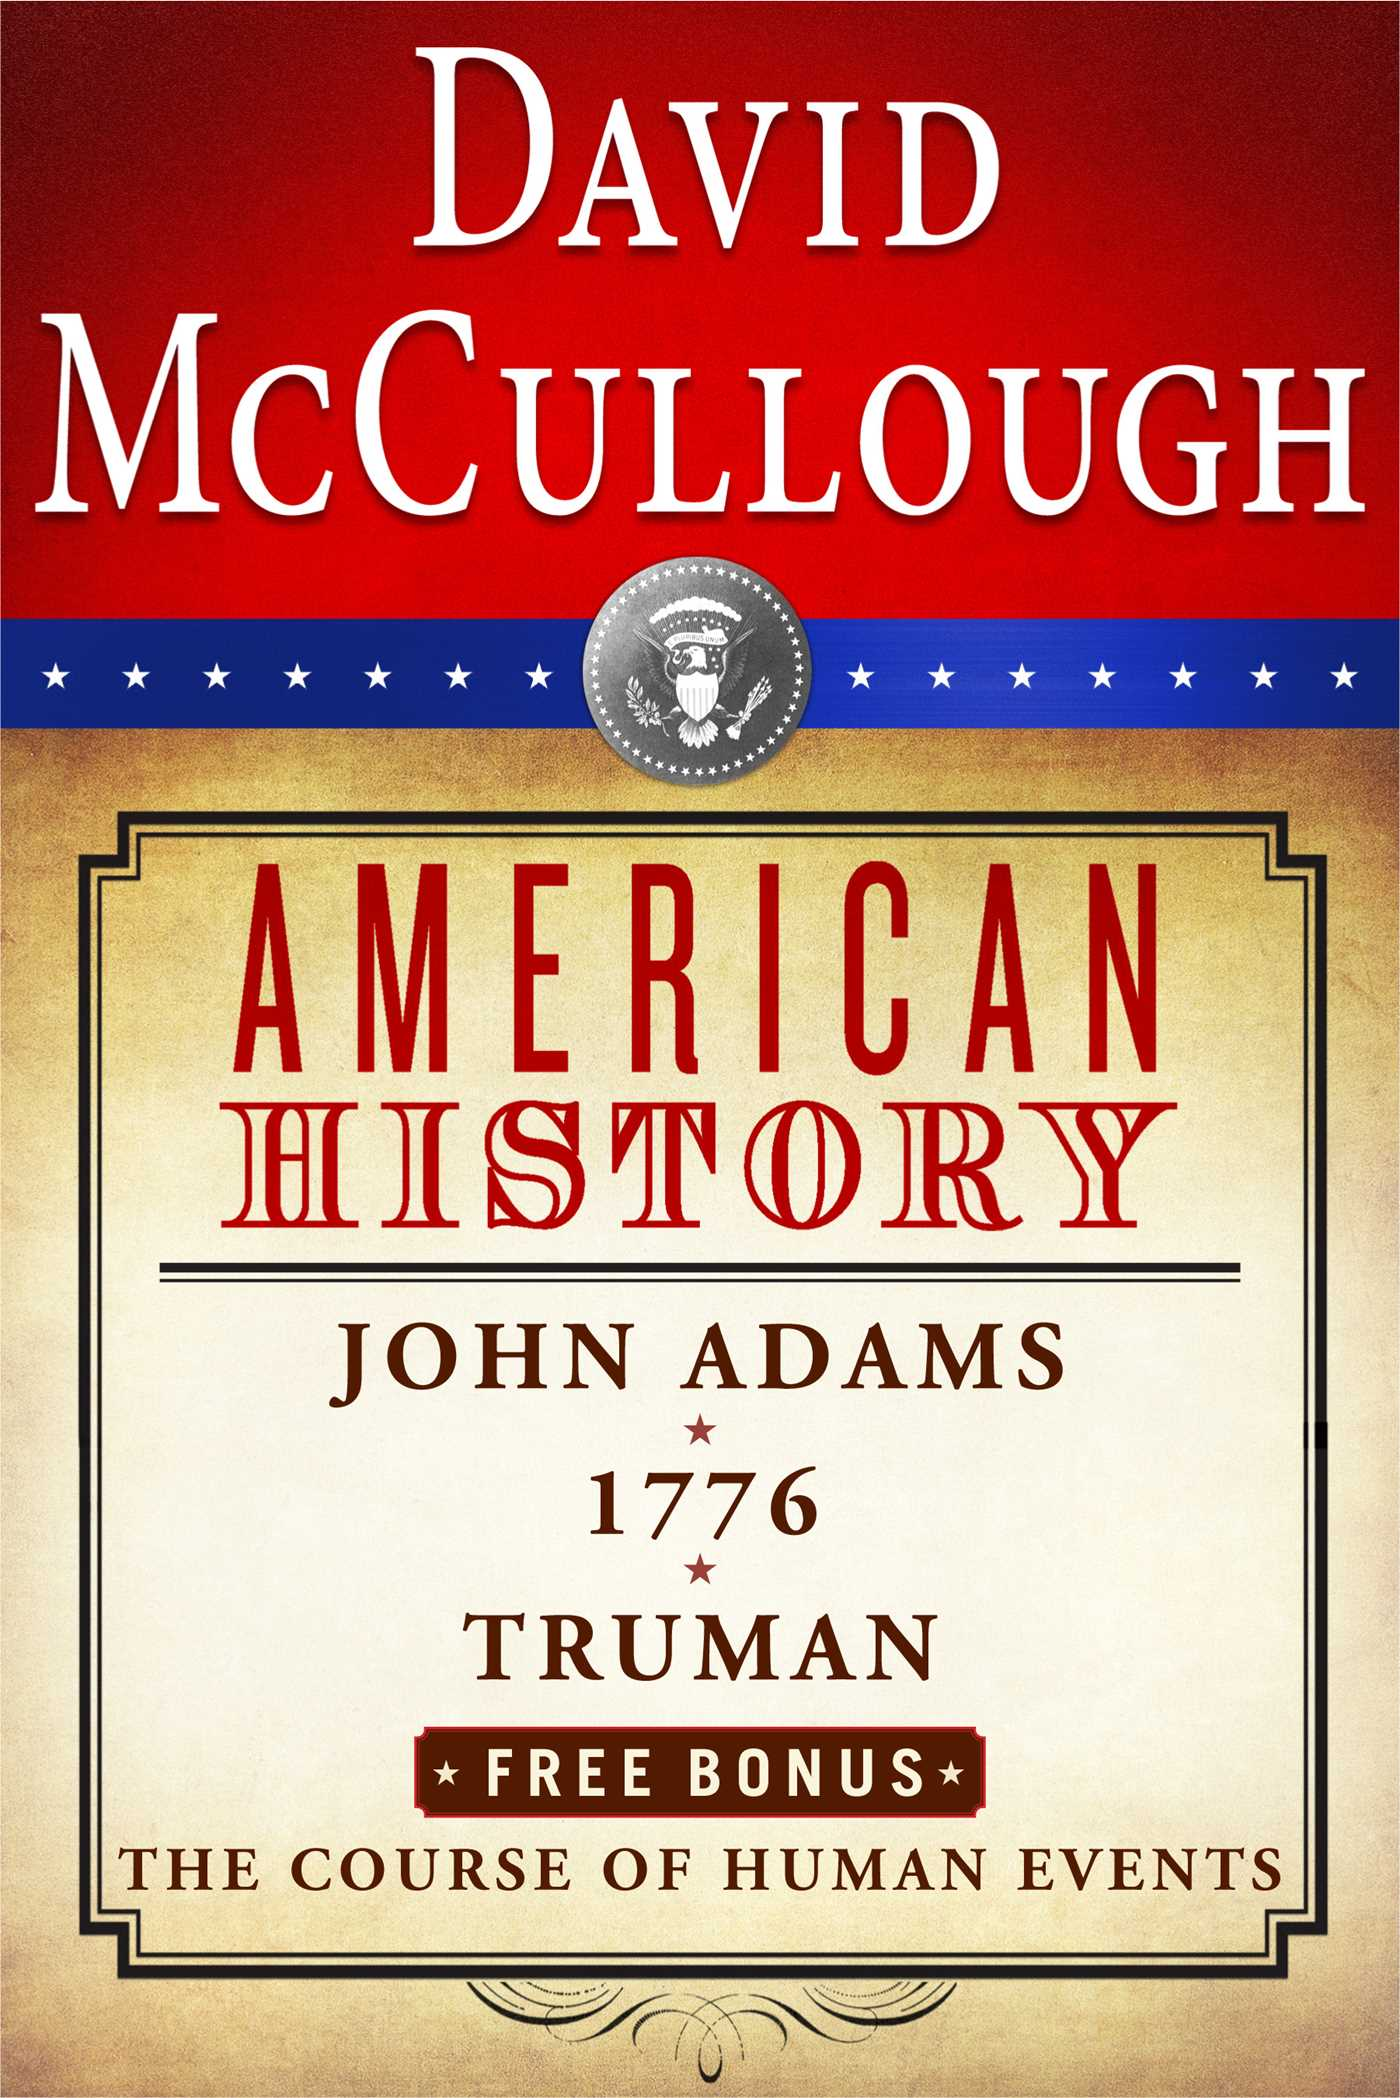 Book Cover Image (jpg): David Mccullough American History Ebook Box Set